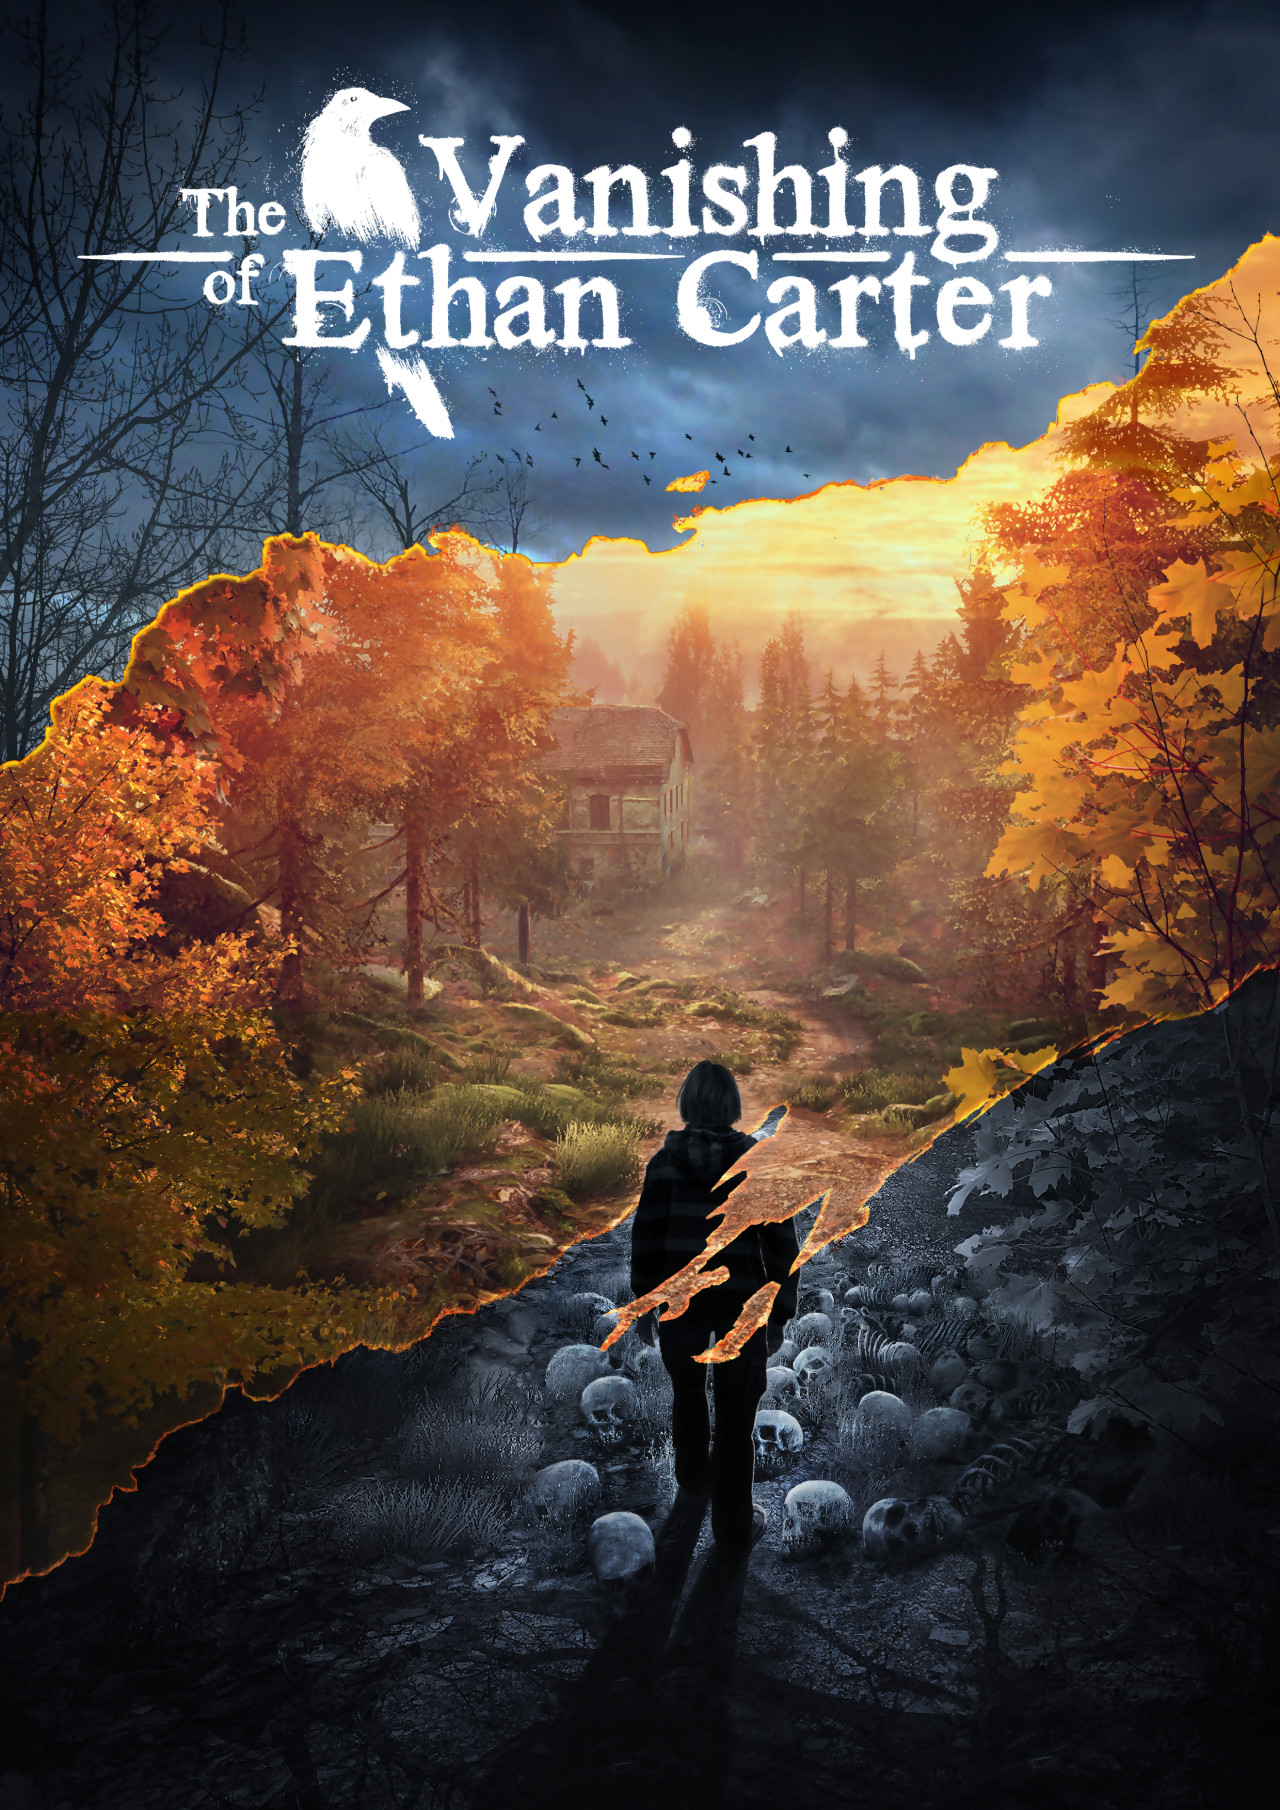 The Vanishing of Ethan Carter Redux